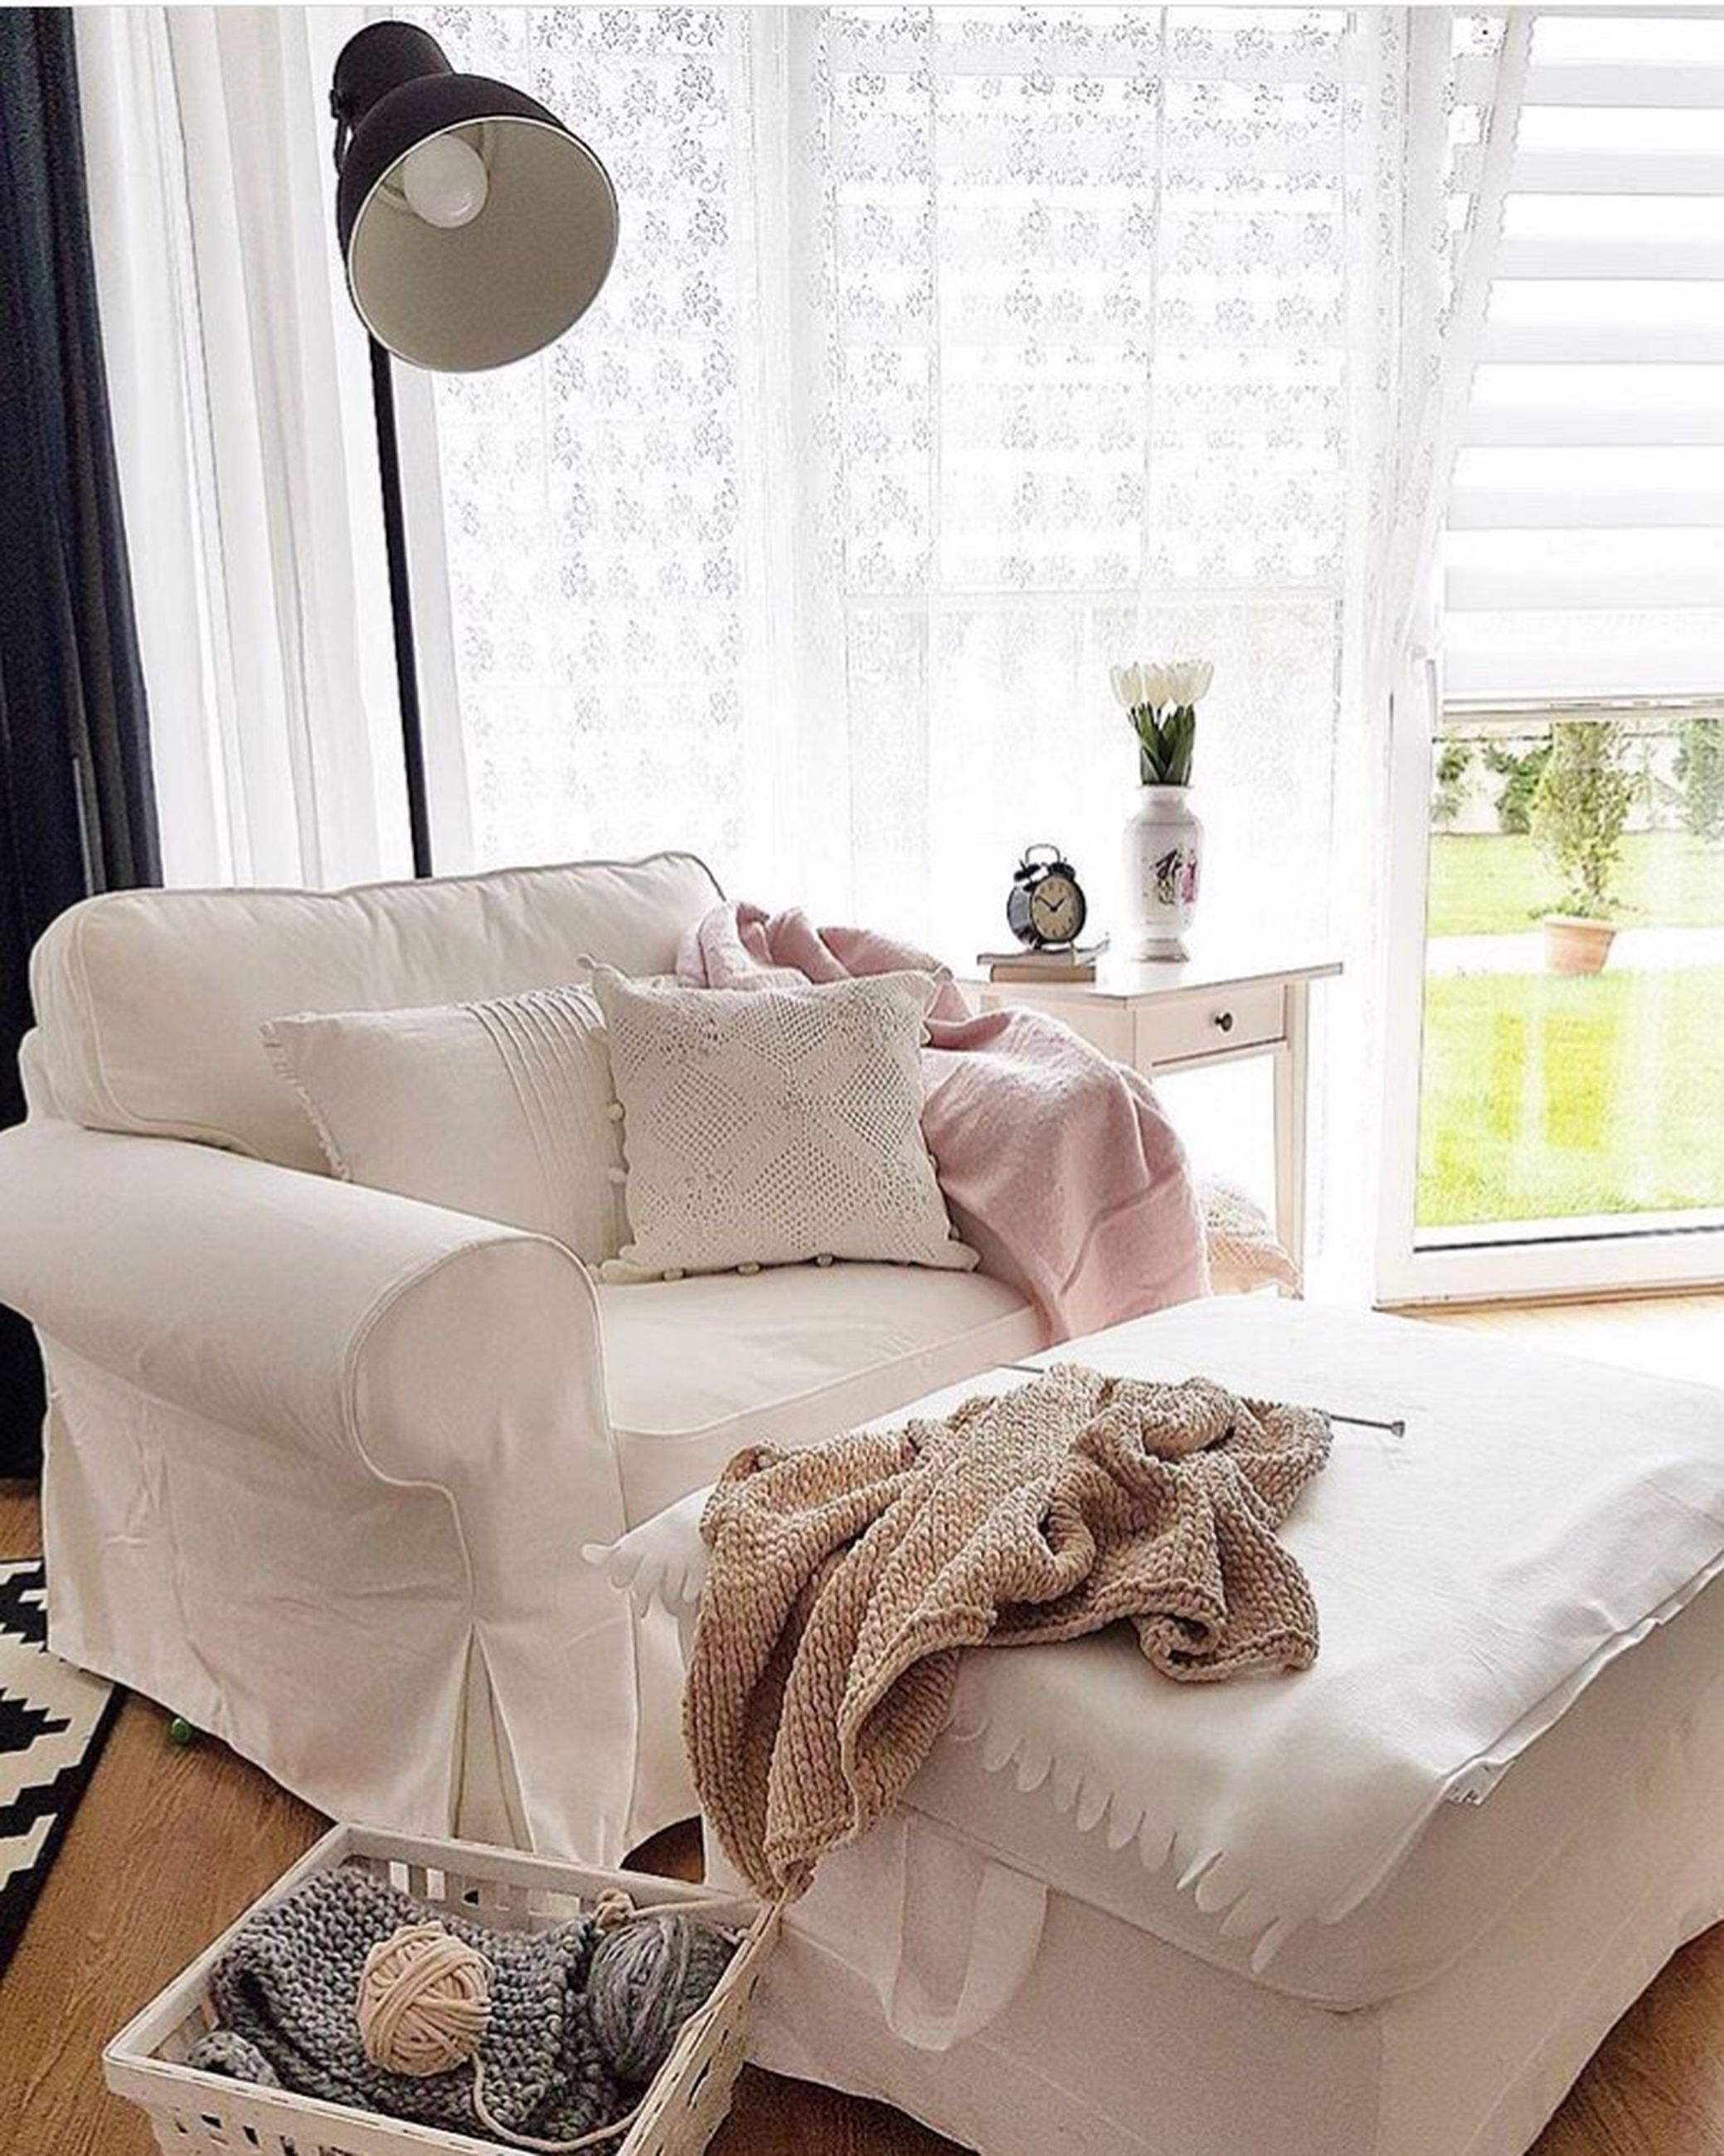 indoors, home interior, home showcase interior, sofa, built structure, curtain, architecture, house, close-up, casual clothing, relaxation, messy